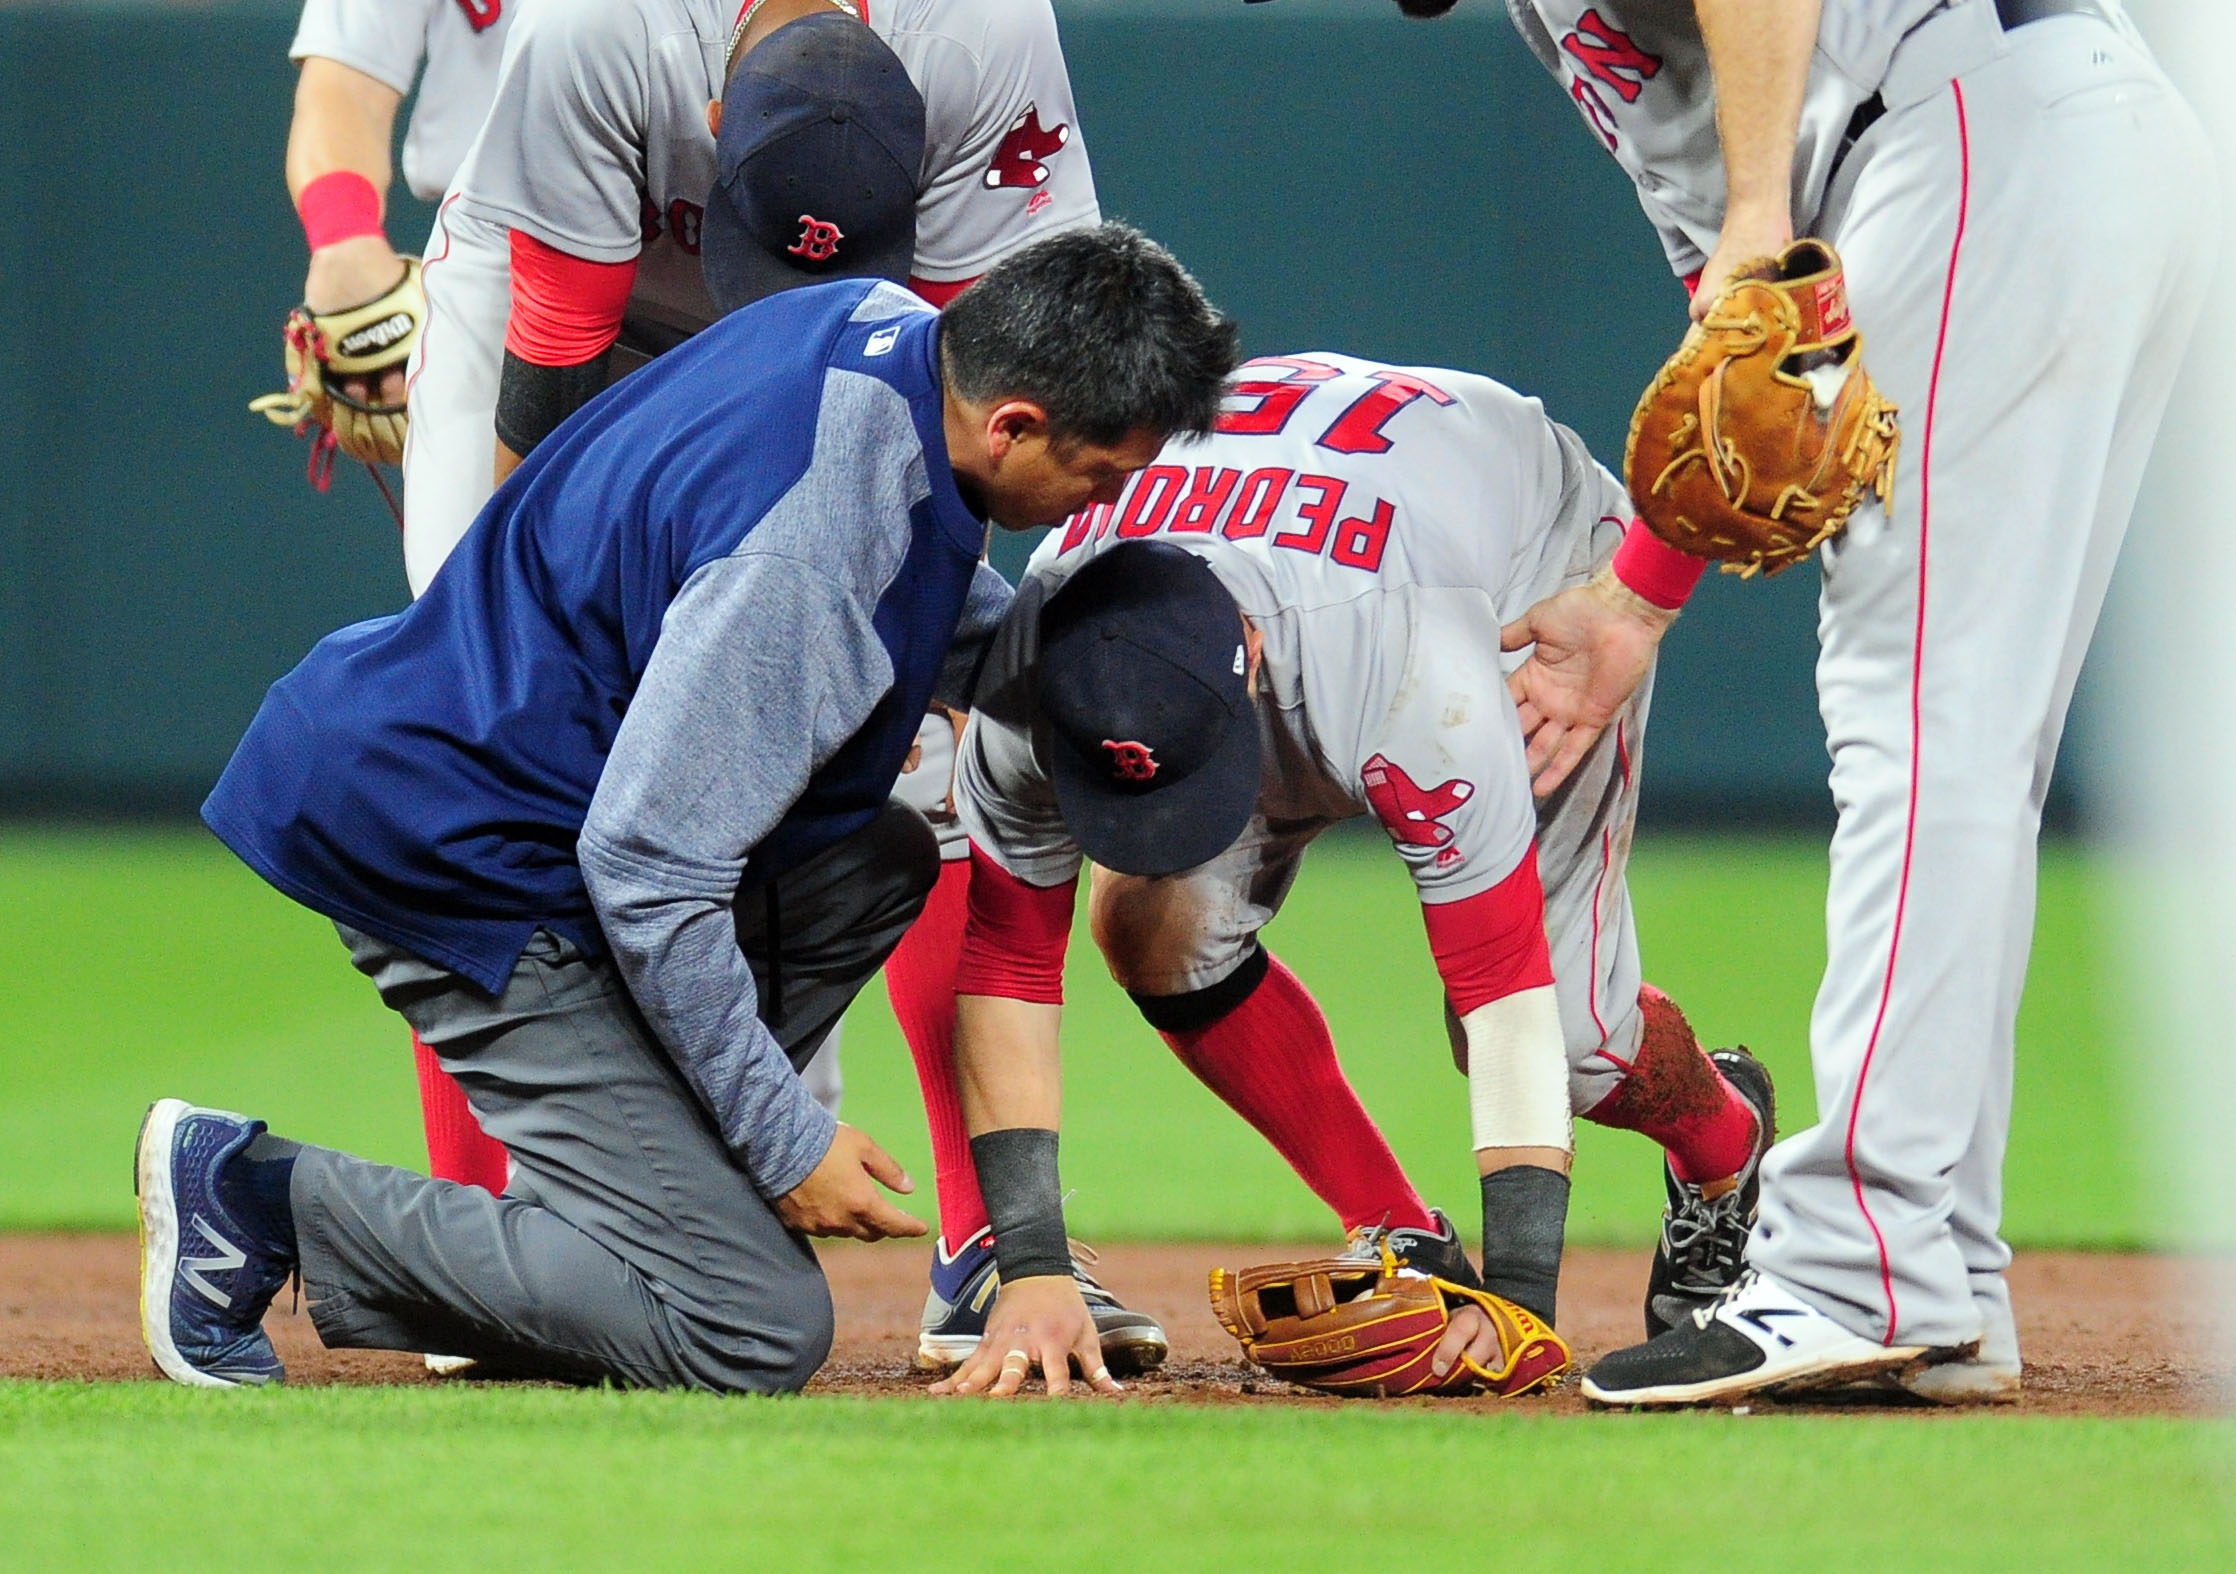 Pedroia hurt on Machado's slide into second